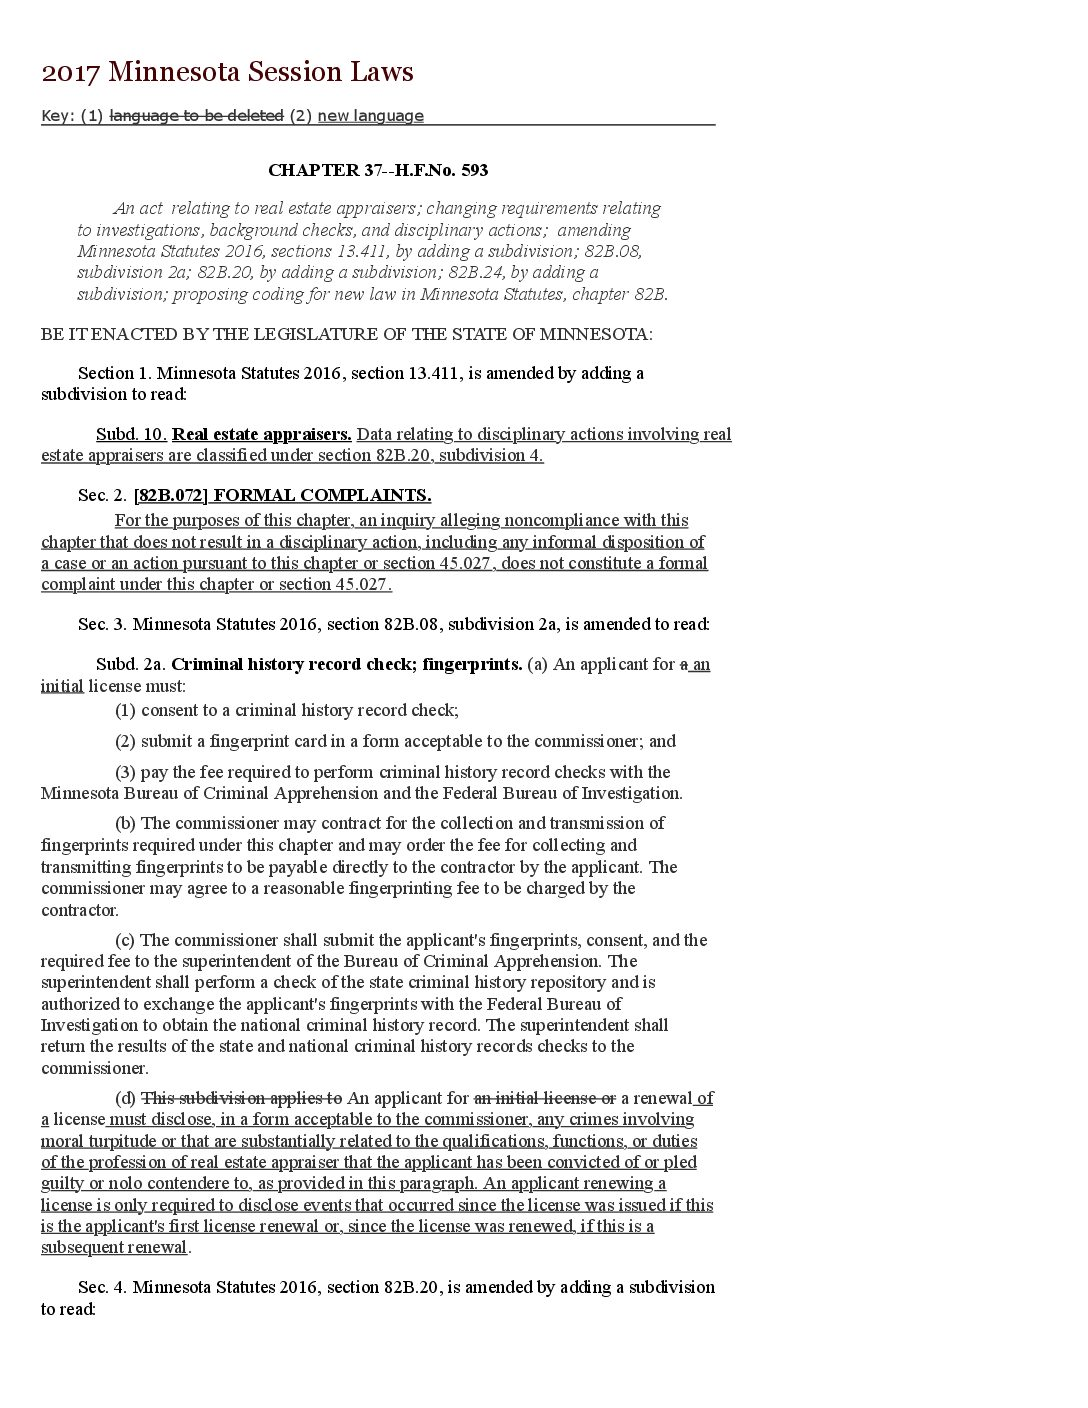 Chapter-37-Minnesota-Session-Laws.pdf